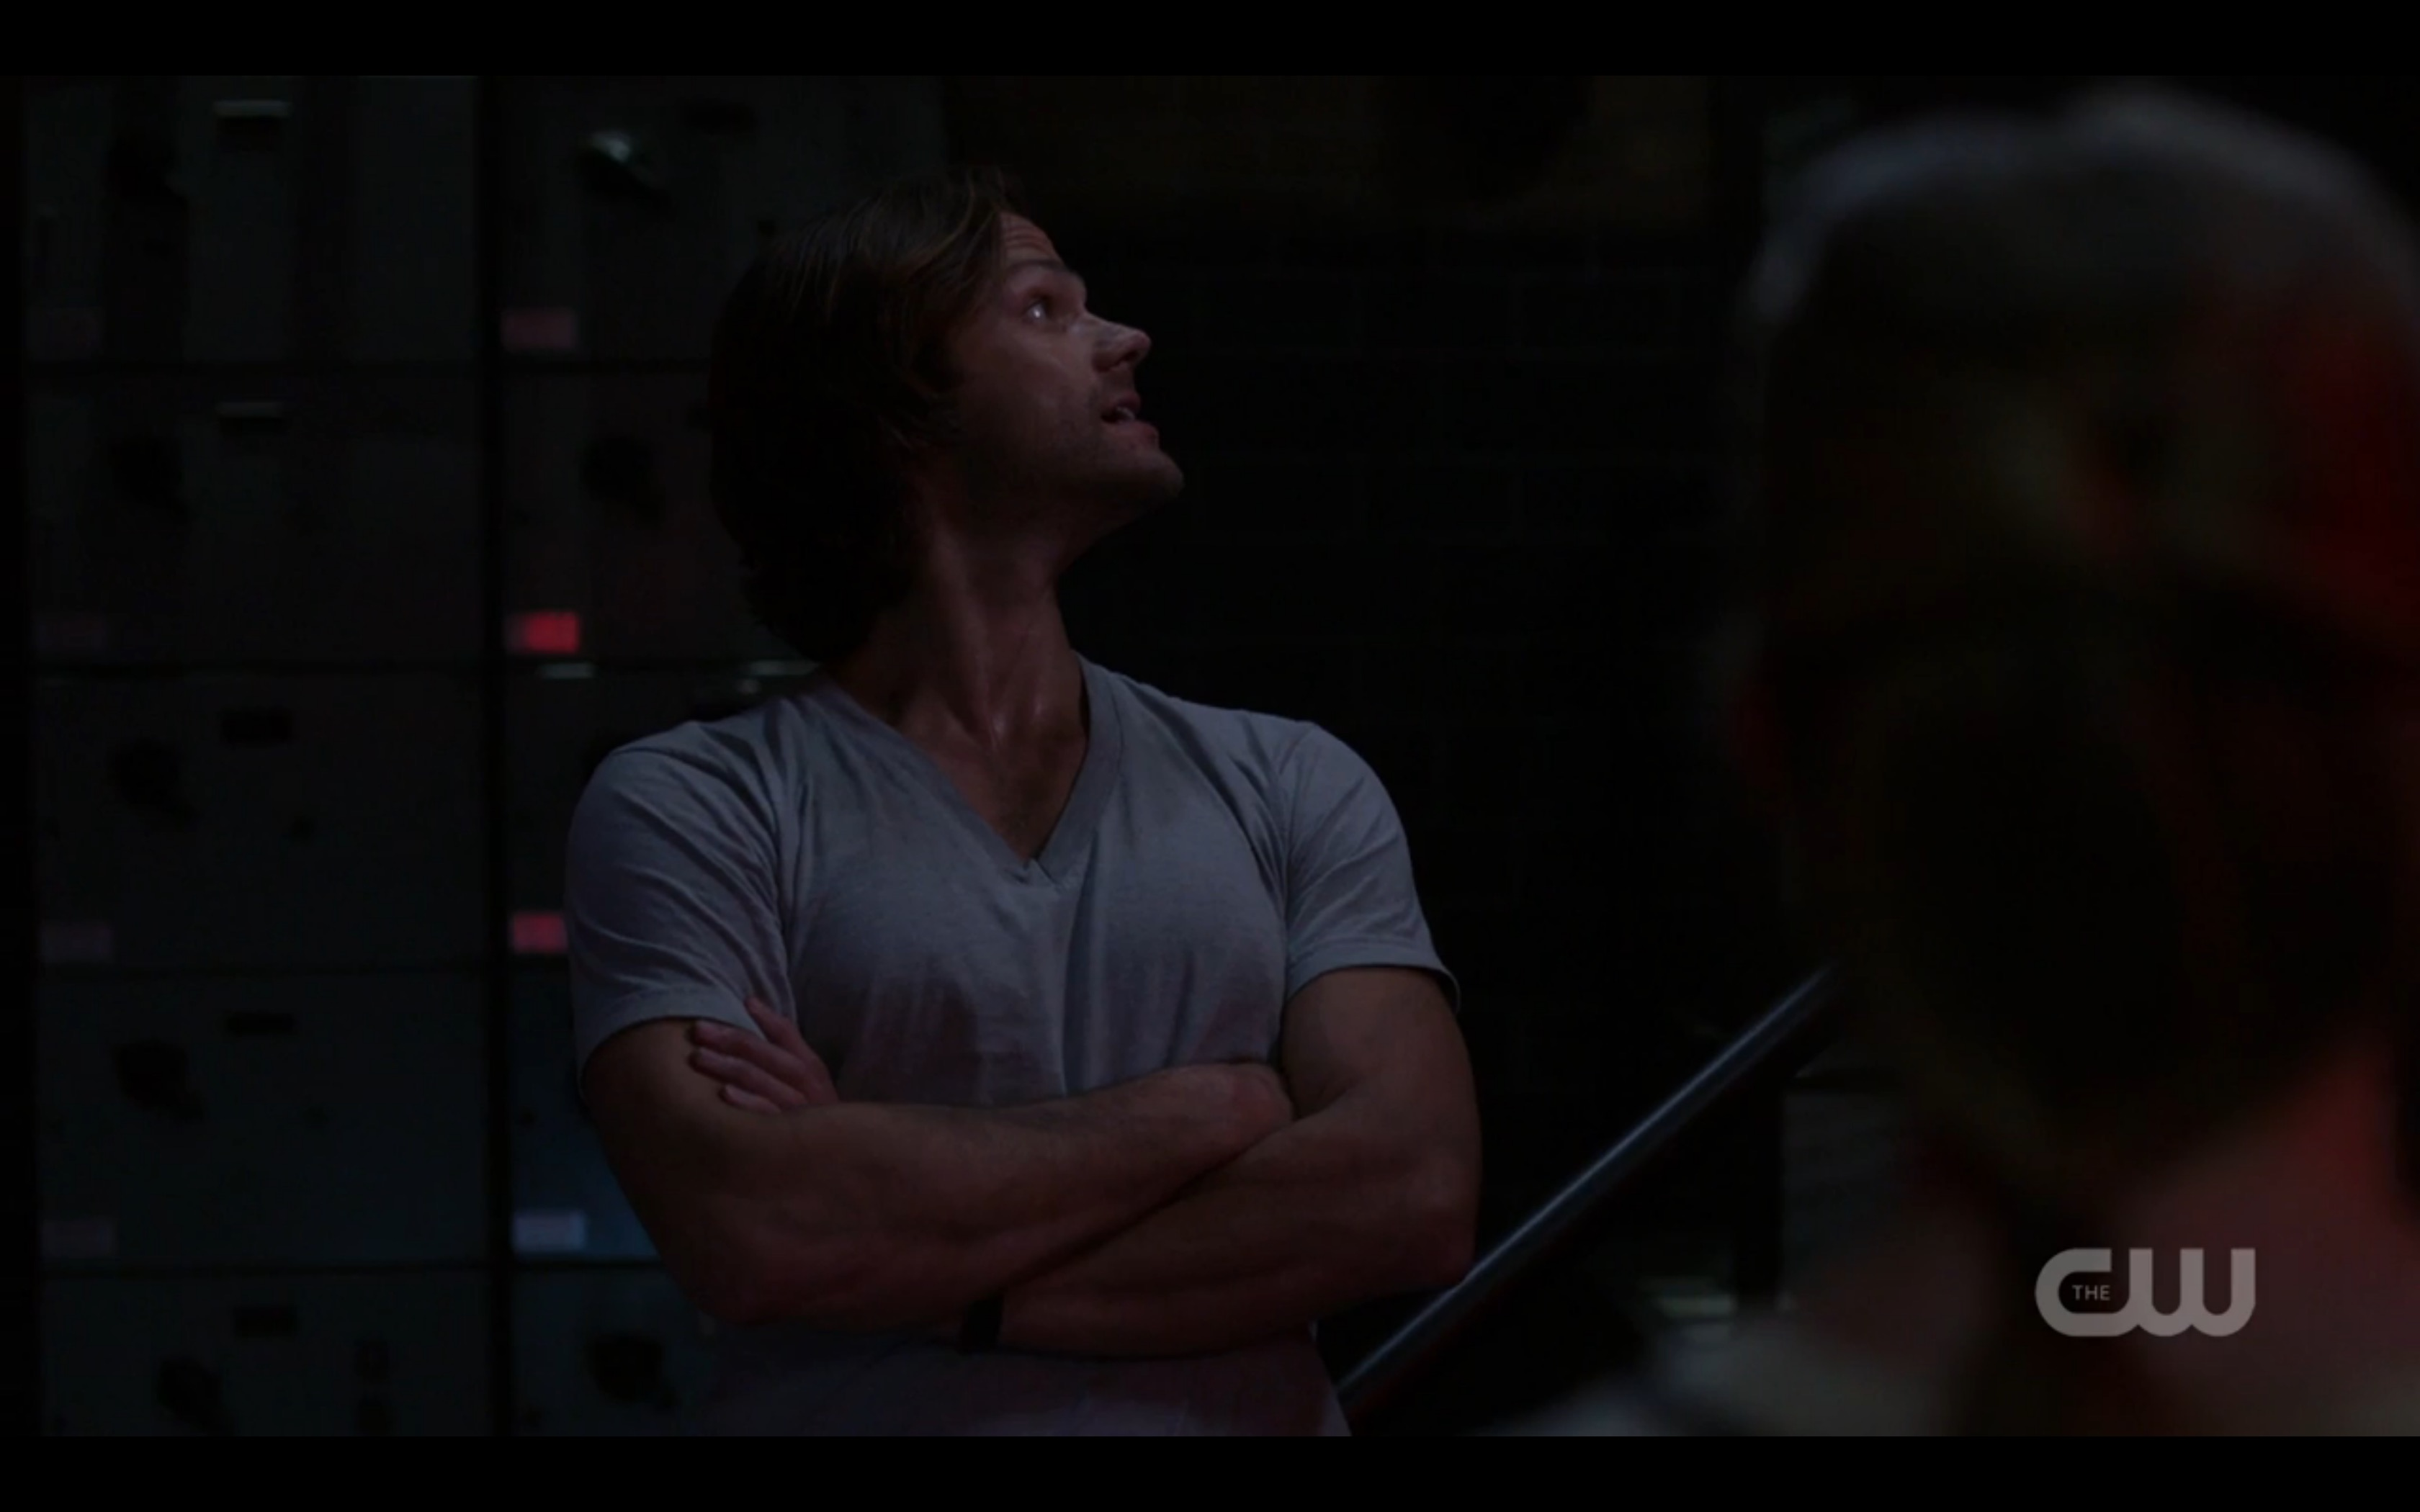 supernatural sam winchester brething heavy naughty stuff